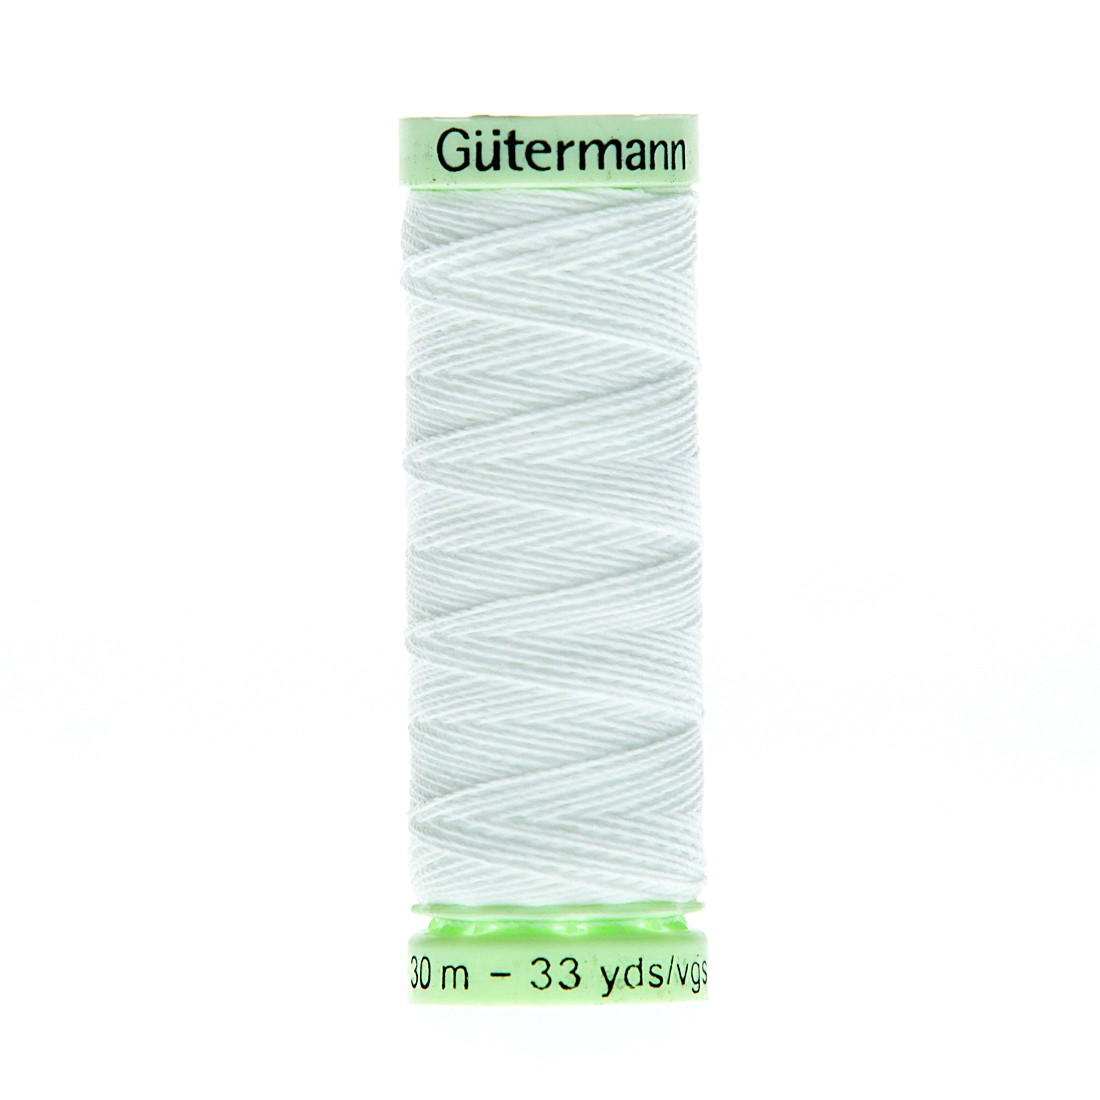 Gutermann Top Stitch Thread - 30m